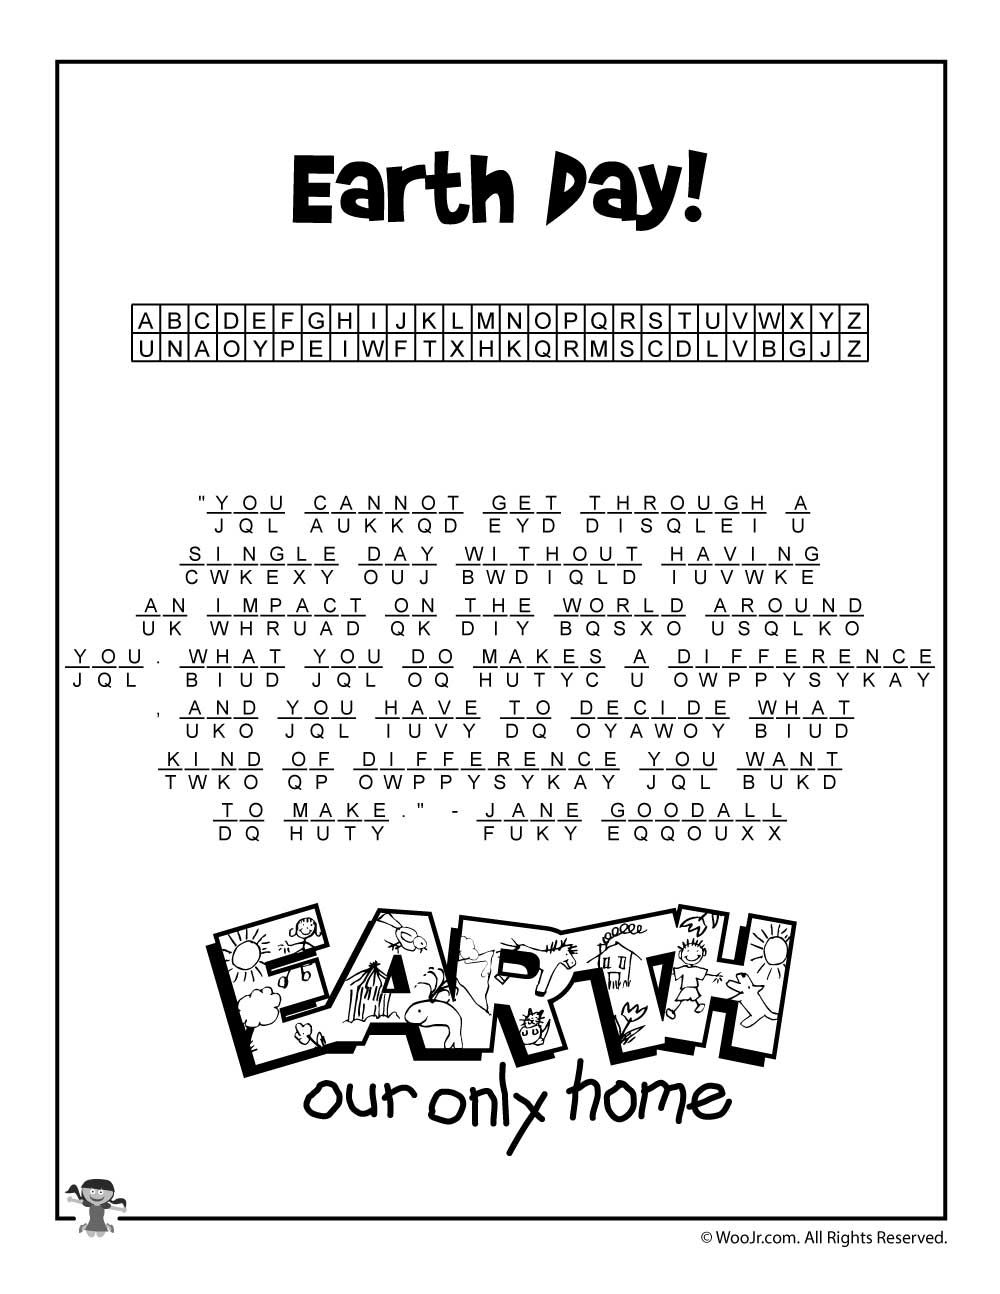 Earth Day Cryptogram Puzzle Solution | Class Decorations | Earth Day - Printable Cryptogram Puzzles With Answers